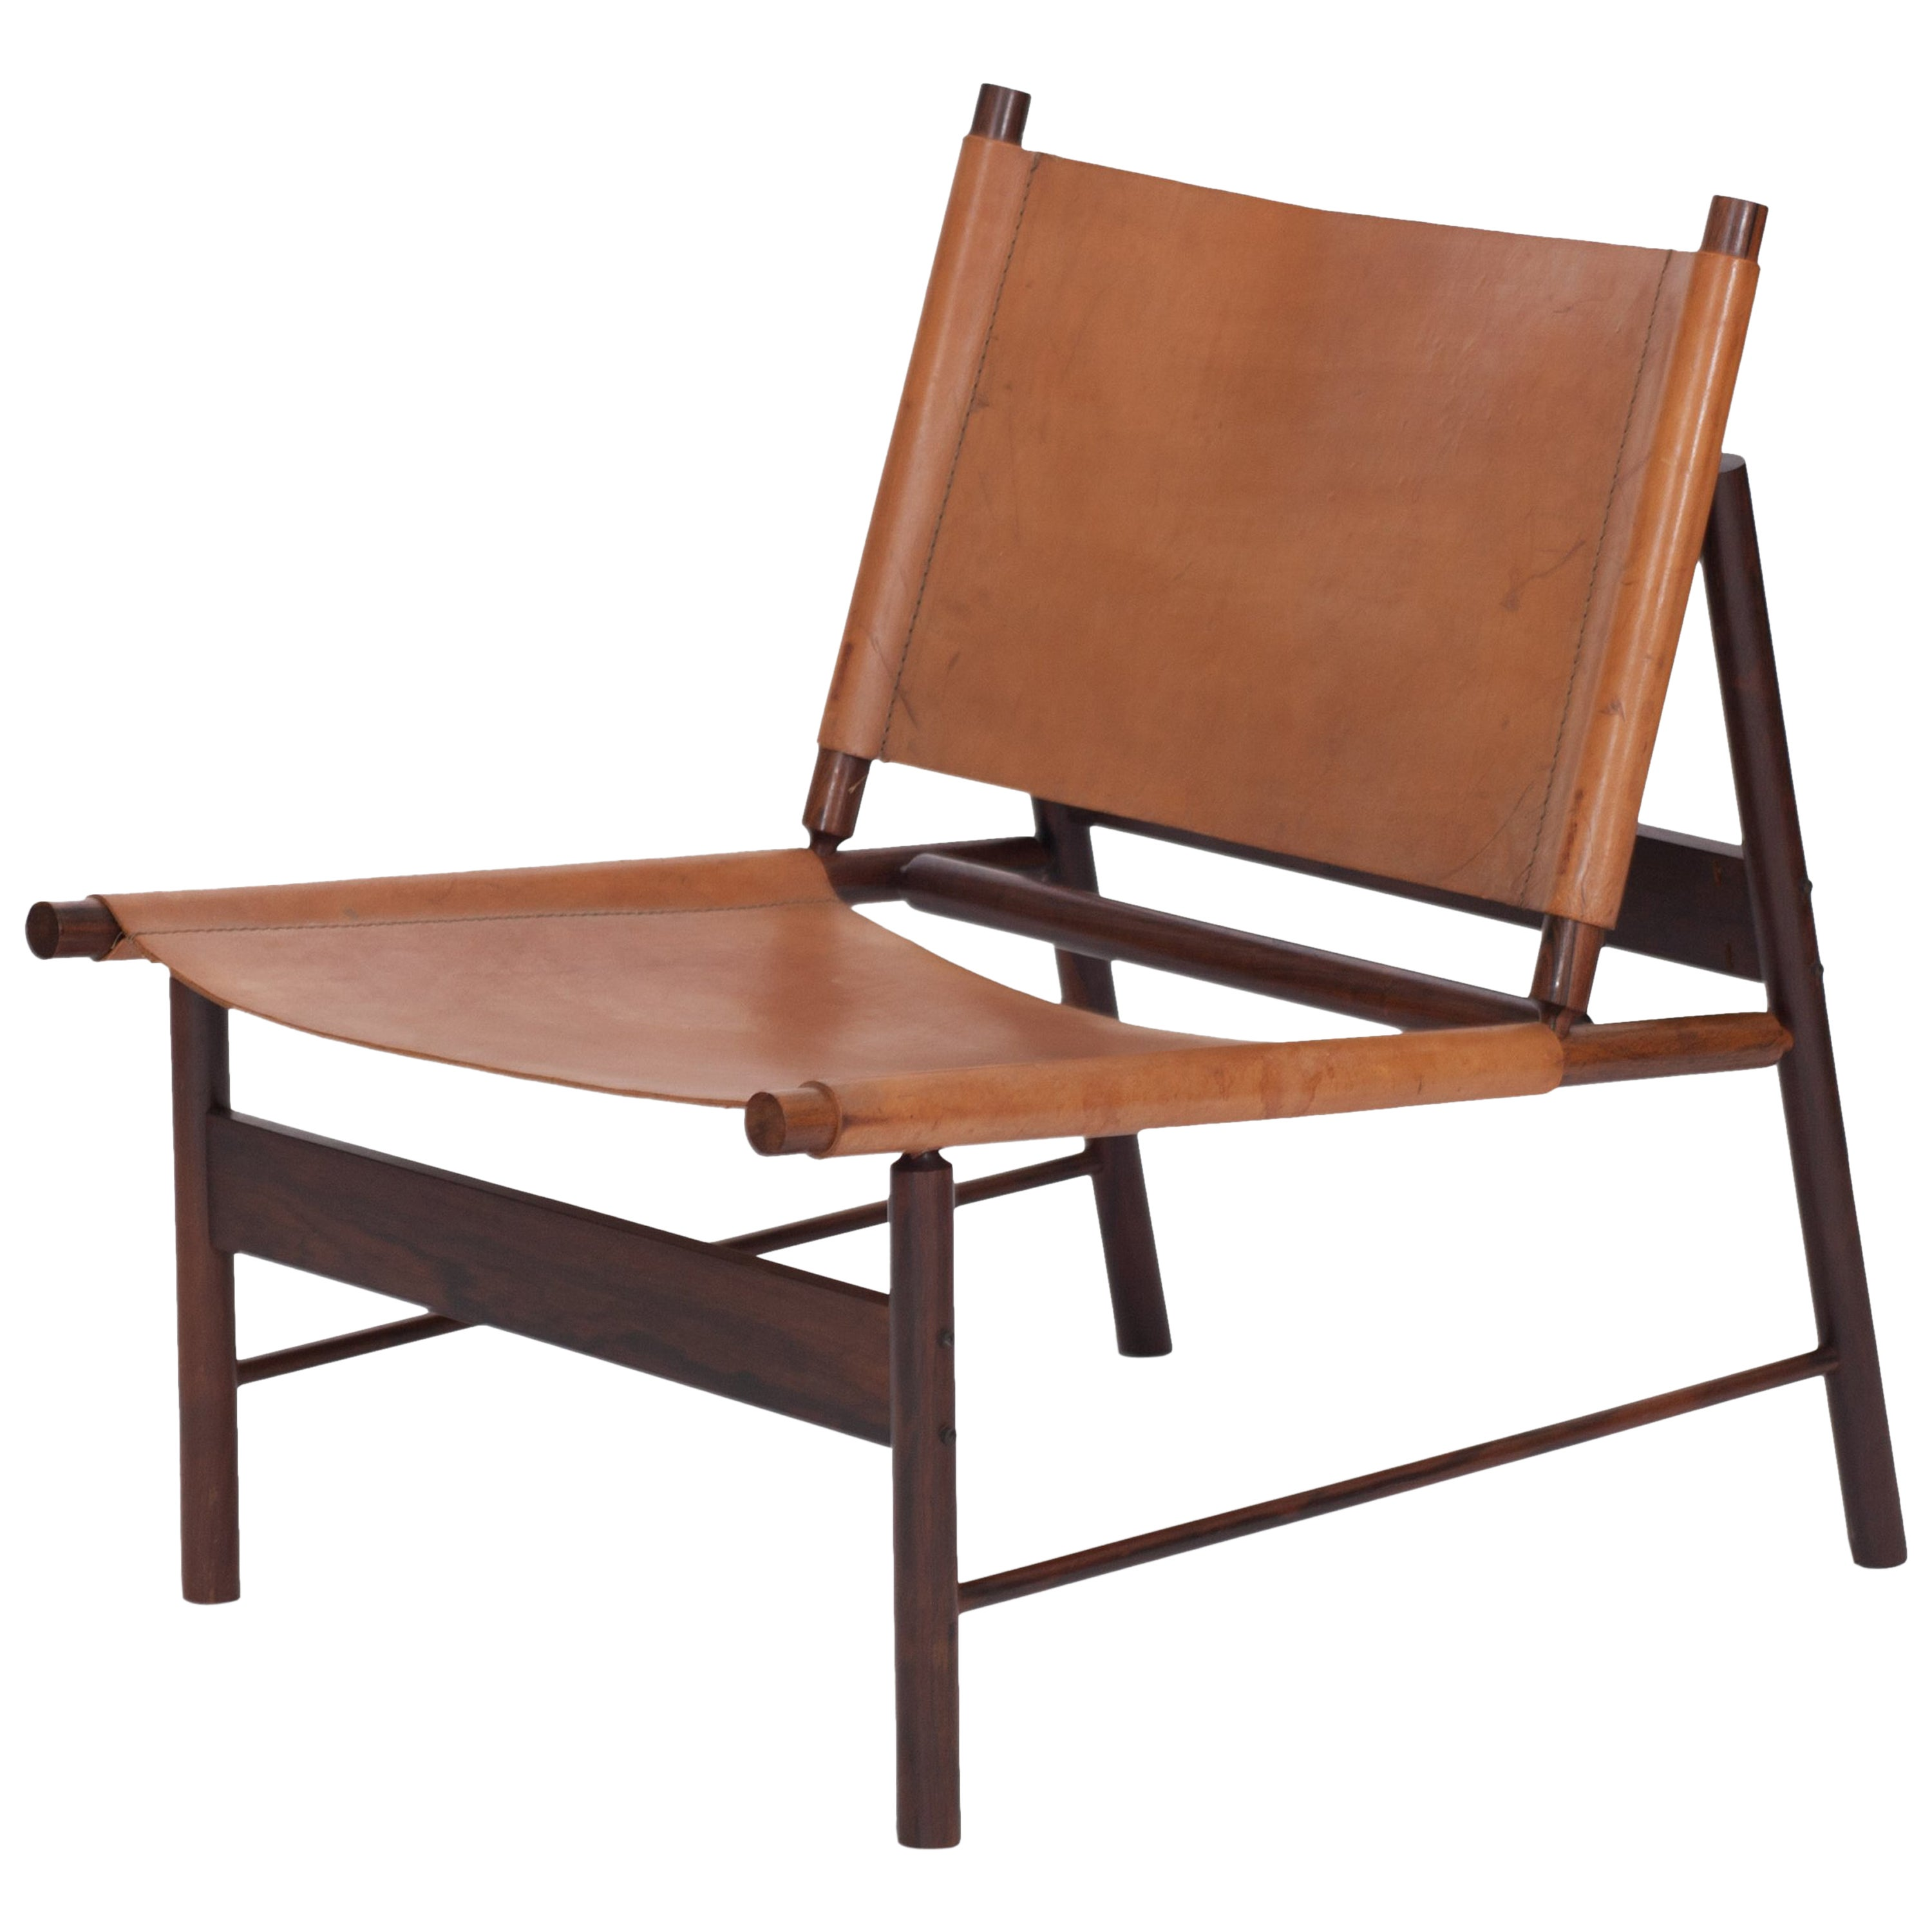 Rosewood and Cognac Leather Lounge Chair by Jorge Zalszupin, Brazil, 1955